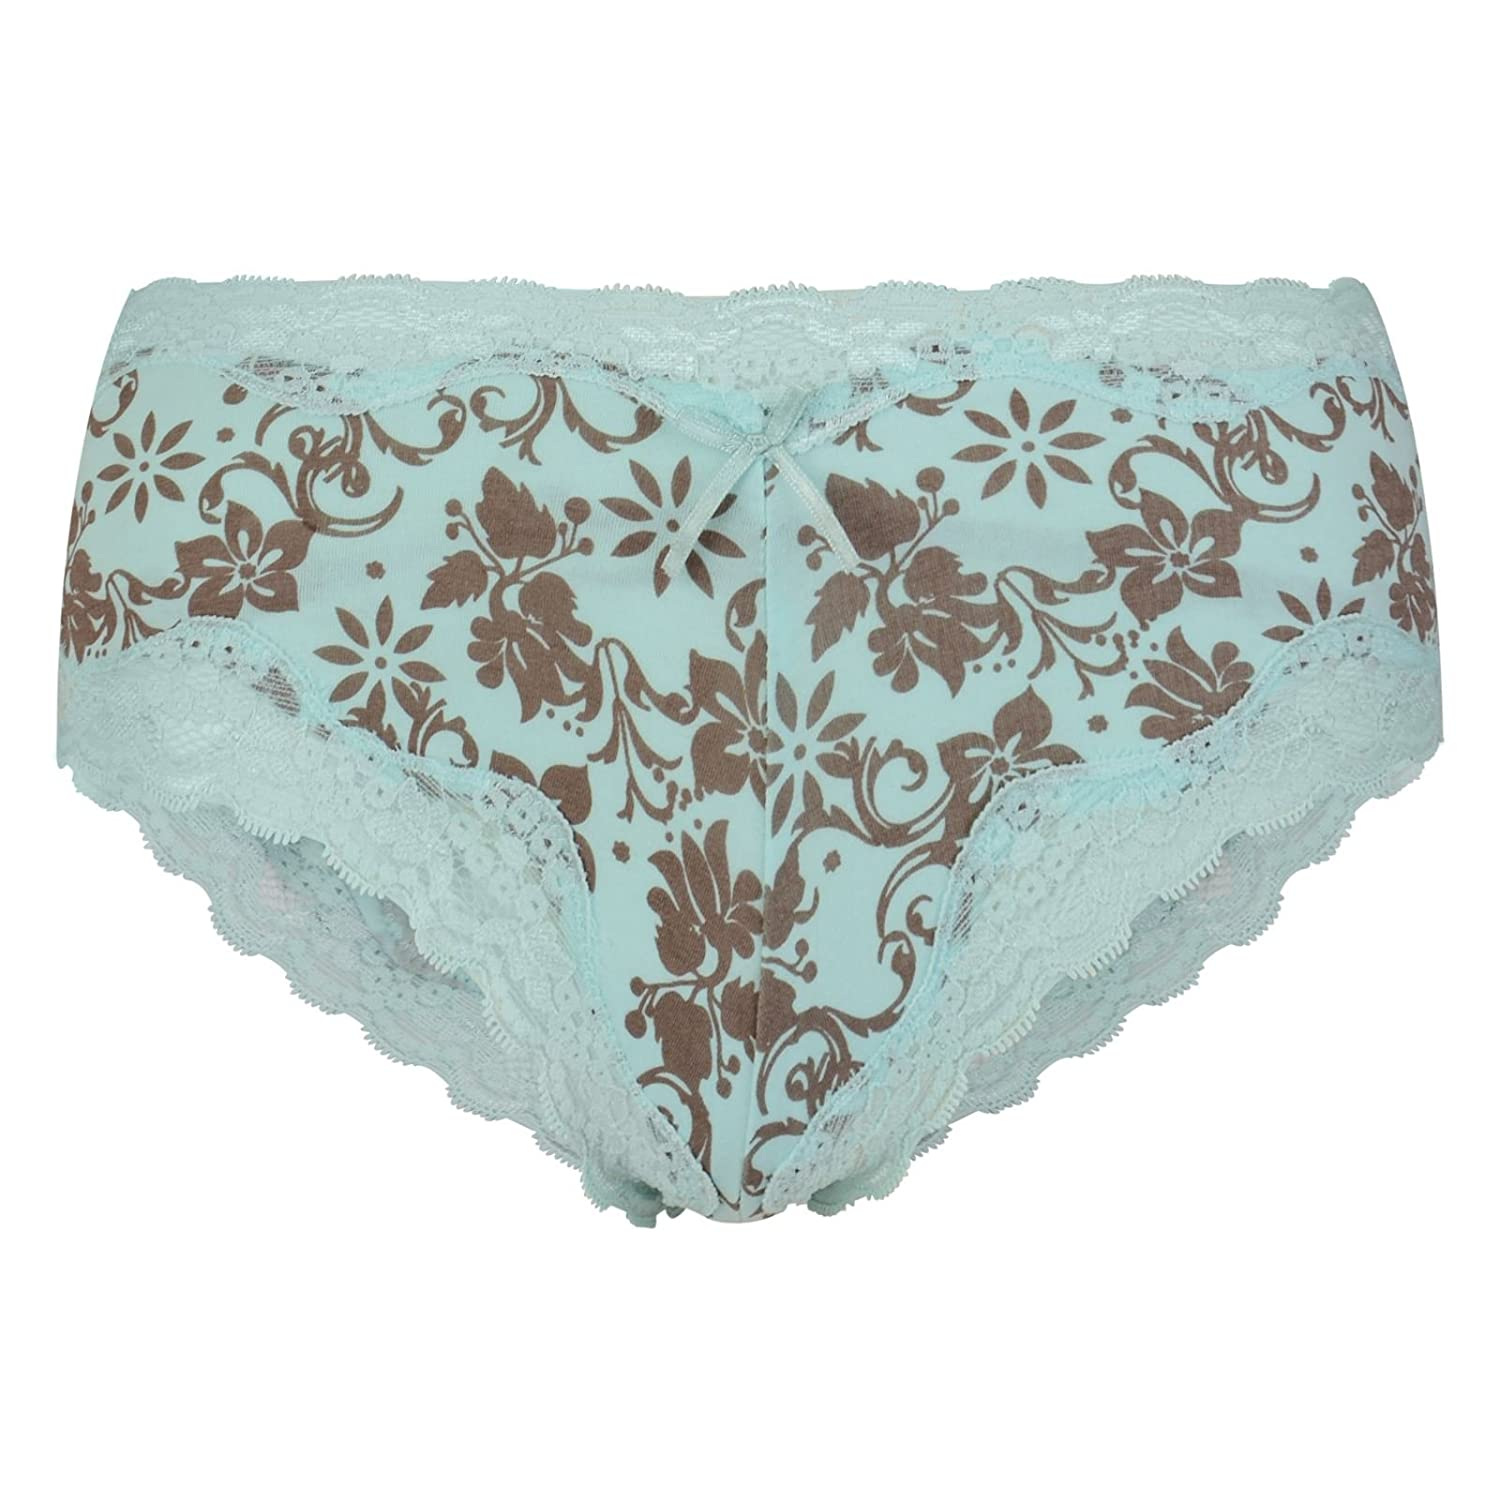 36f0db4c25c Ladies French Knickers Womens Boy Shorts Style Briefs Pretty Lace Trimmed Floral  Lingerie Nightwear Underwear Sizes 10-12  Amazon.co.uk  Clothing